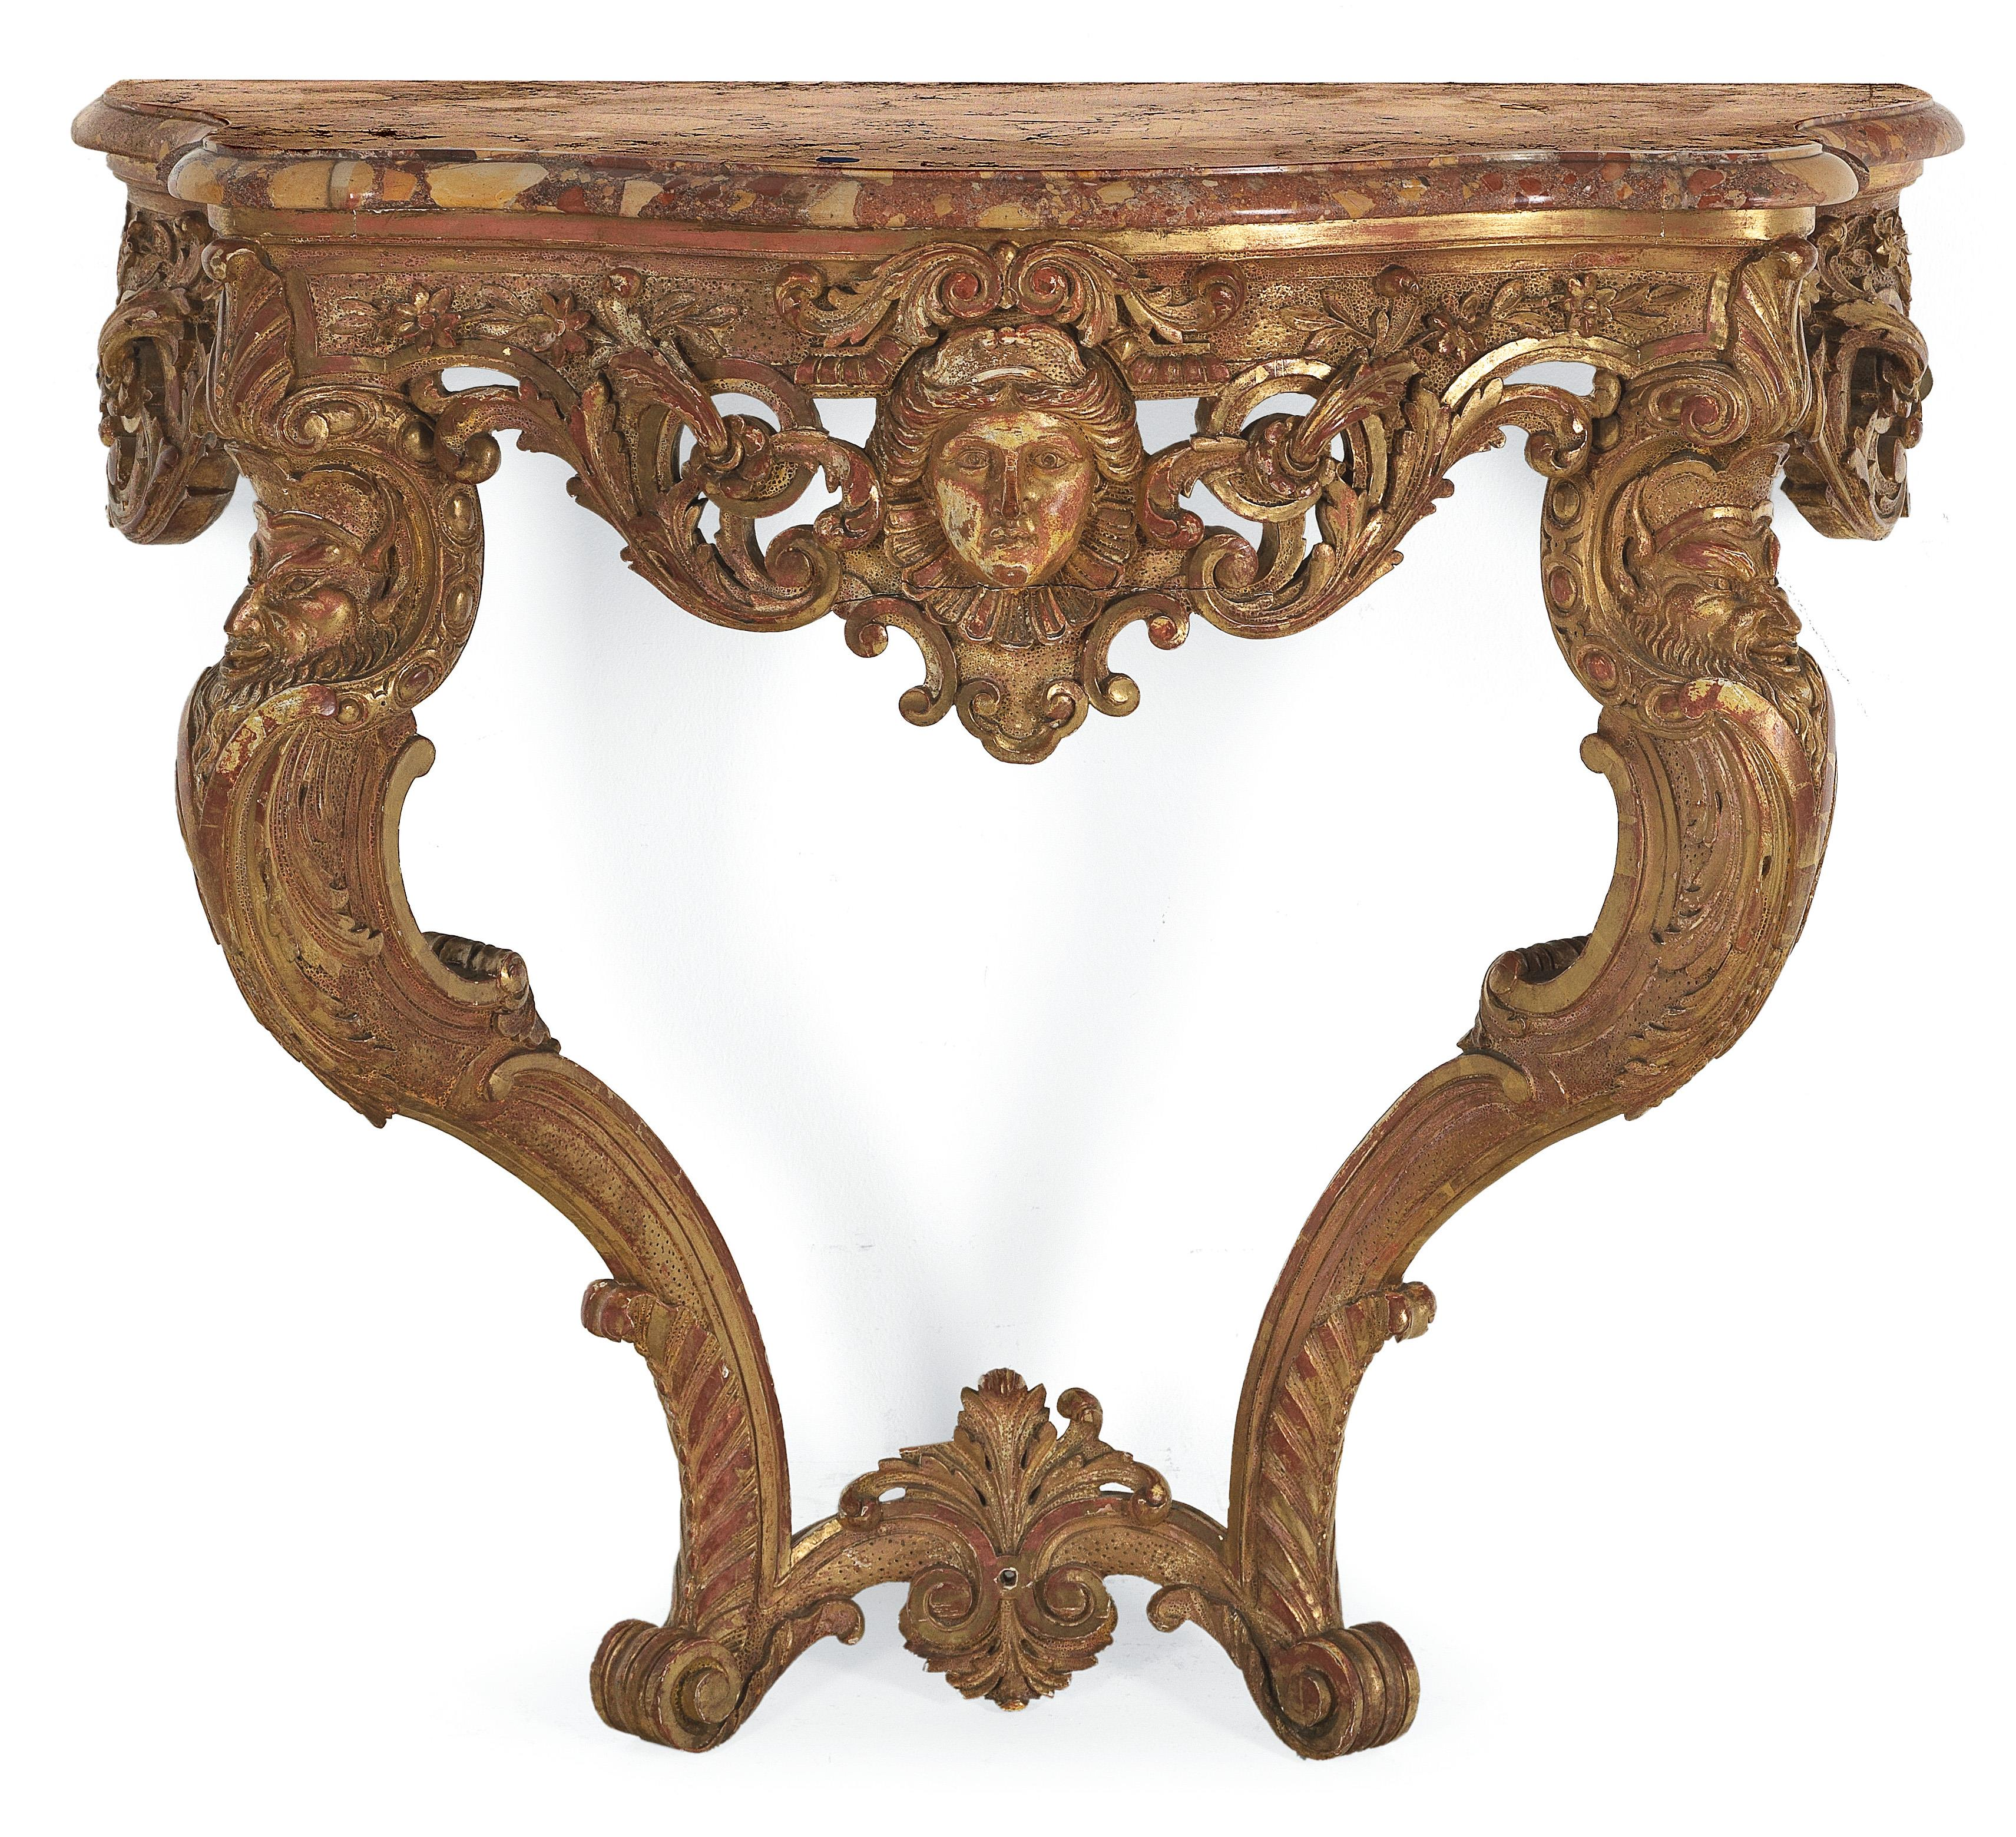 French Louis Xv Revival Console Table Works Of Art 2017 10 18 Realized Price Eur 4 500 Dorotheum